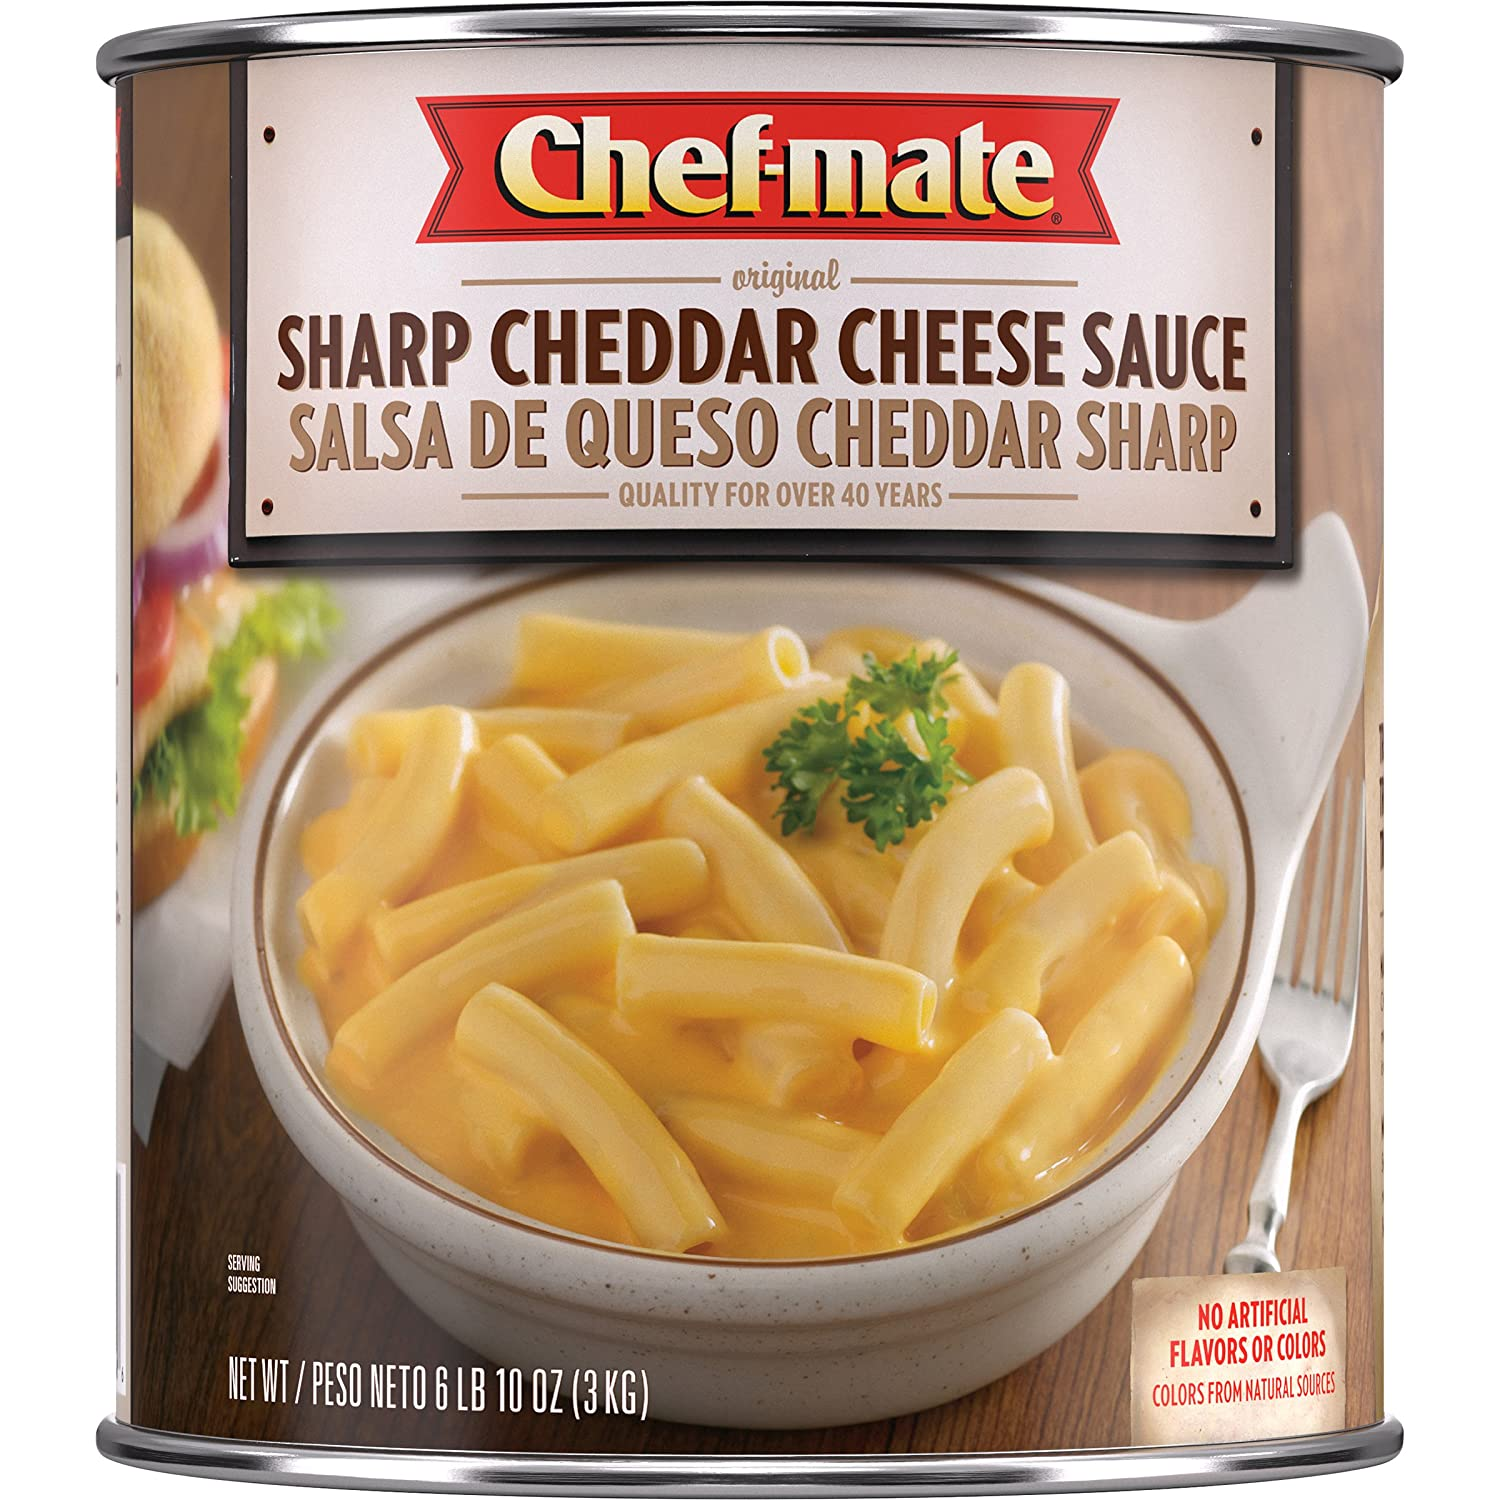 Chef-mate Original Golden Cheese Sauce, Nacho Cheese, Great for Macaroni and Cheese, 6 lb 10 oz,...